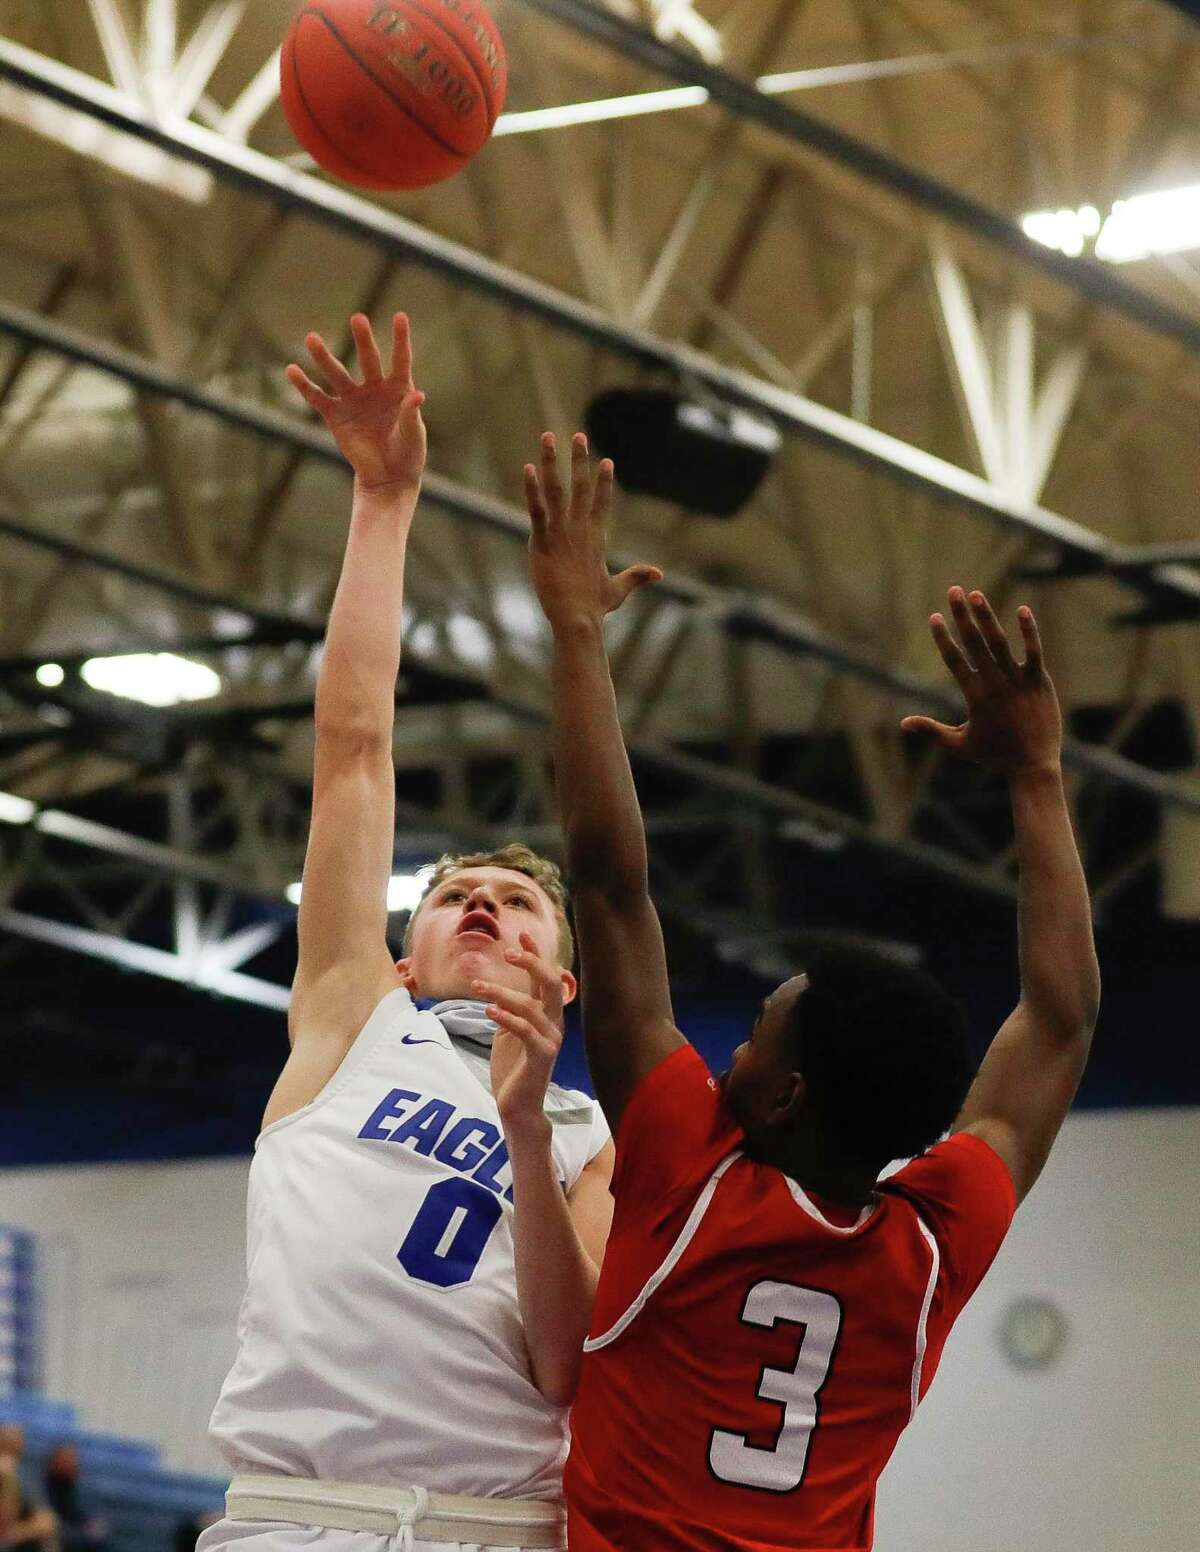 New Caney shooting guard Jaxon Olvera (0) shoots over Cleveland guard Antonio Wheeler (3) during the first quarter of a District 20-5A high school basketball game at New Caney High School, Saturday, Jan. 30, 2021, in New Caney.